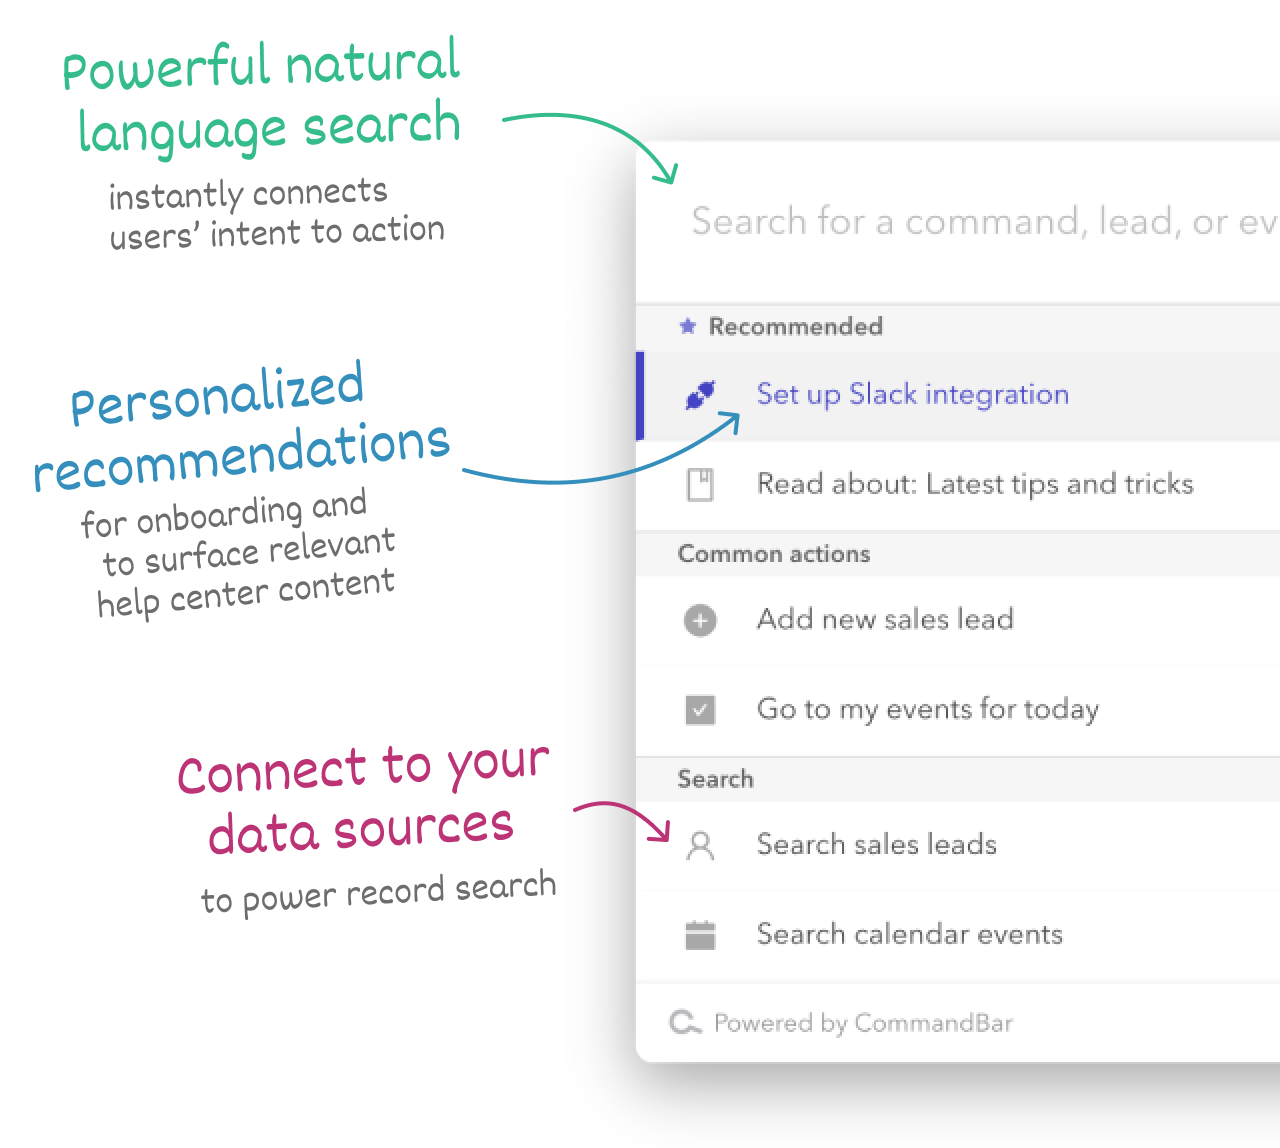 A visual walkthrough of CommandBar features. This includes natural language search and personalized recommendations.